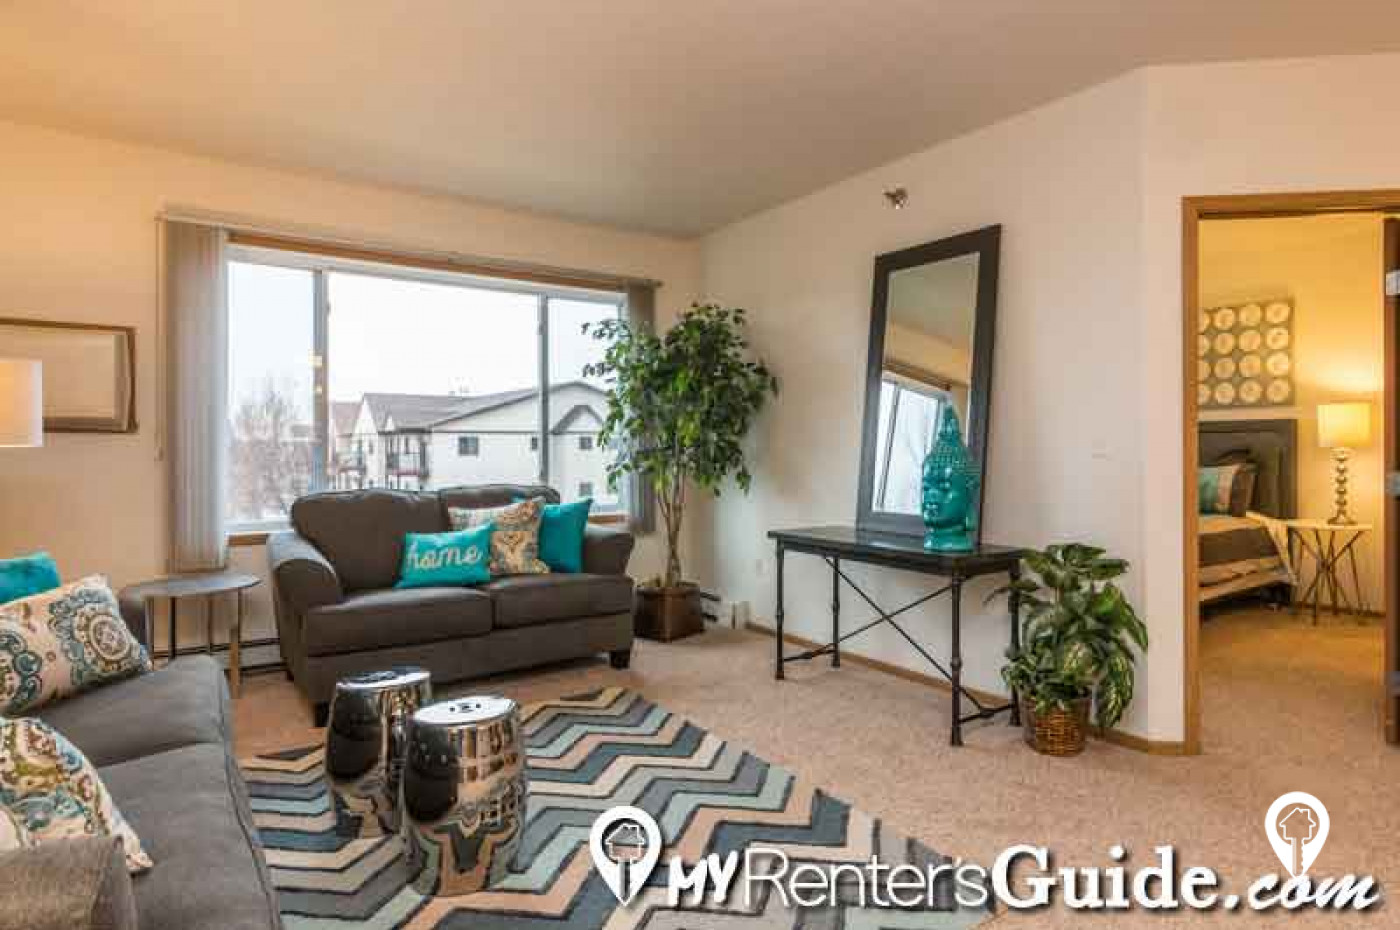 West WillowWood Apartments